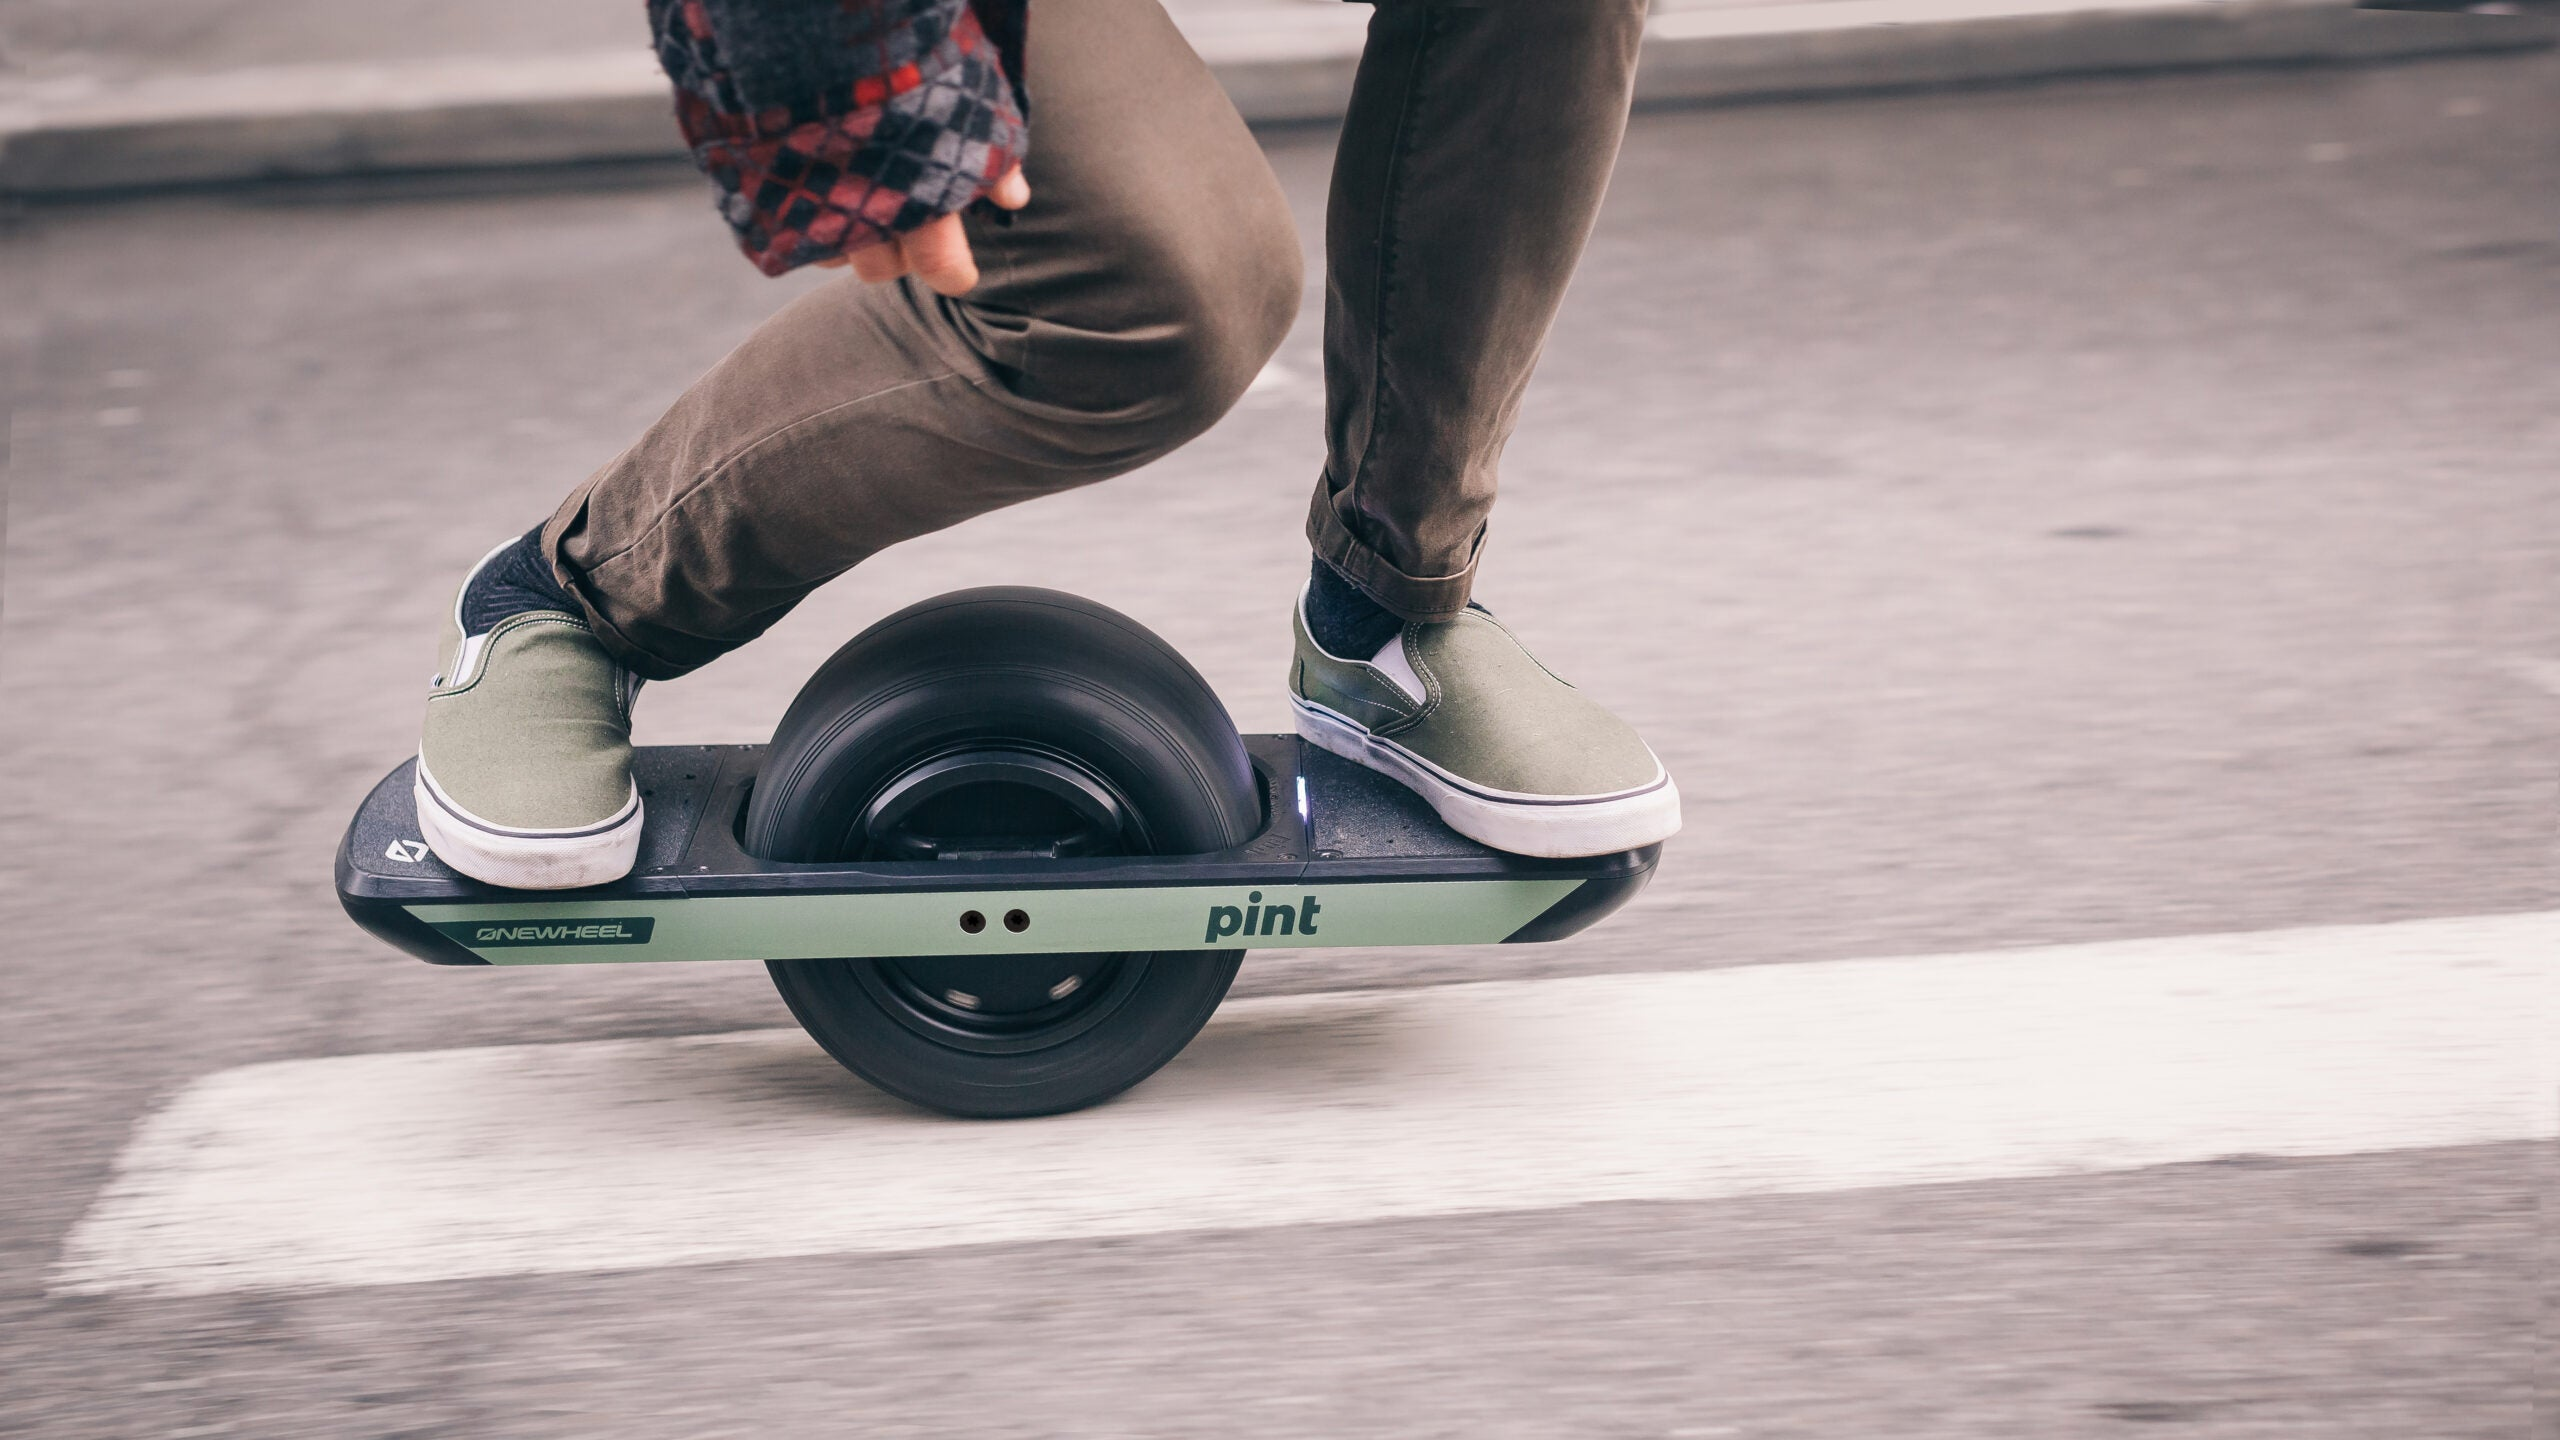 How this one-wheeled skateboard lets riders cruise without crashing